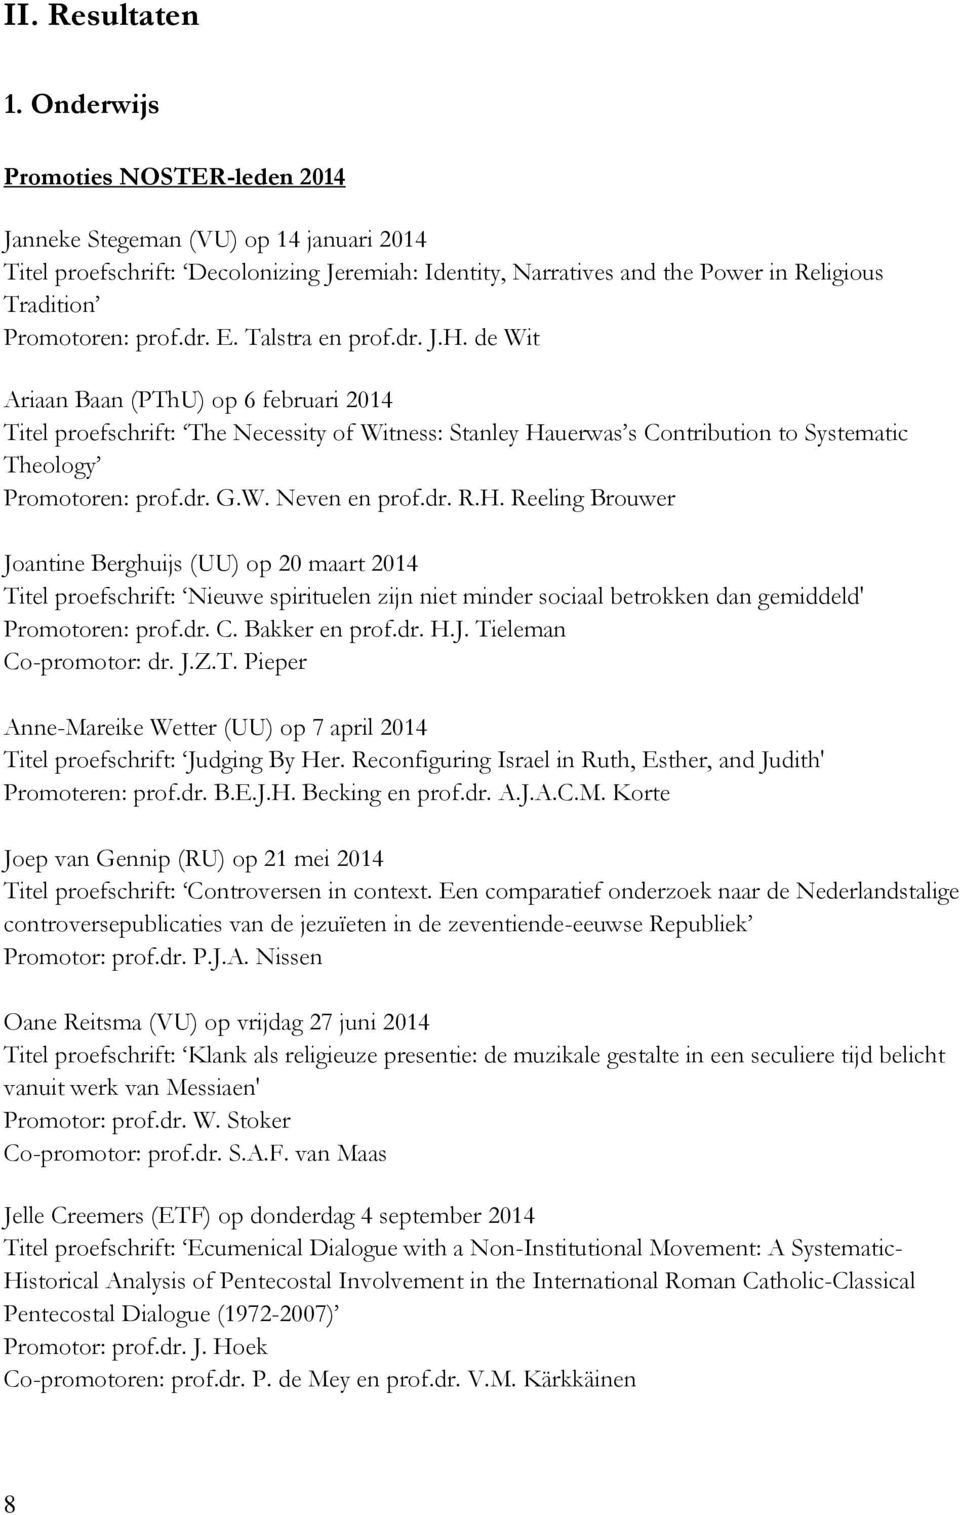 E. Talstra en prof.dr. J.H. de Wit Ariaan Baan (PThU) op 6 februari 2014 Titel proefschrift: The Necessity of Witness: Stanley Hauerwas s Contribution to Systematic Theology Promotoren: prof.dr. G.W. Neven en prof.